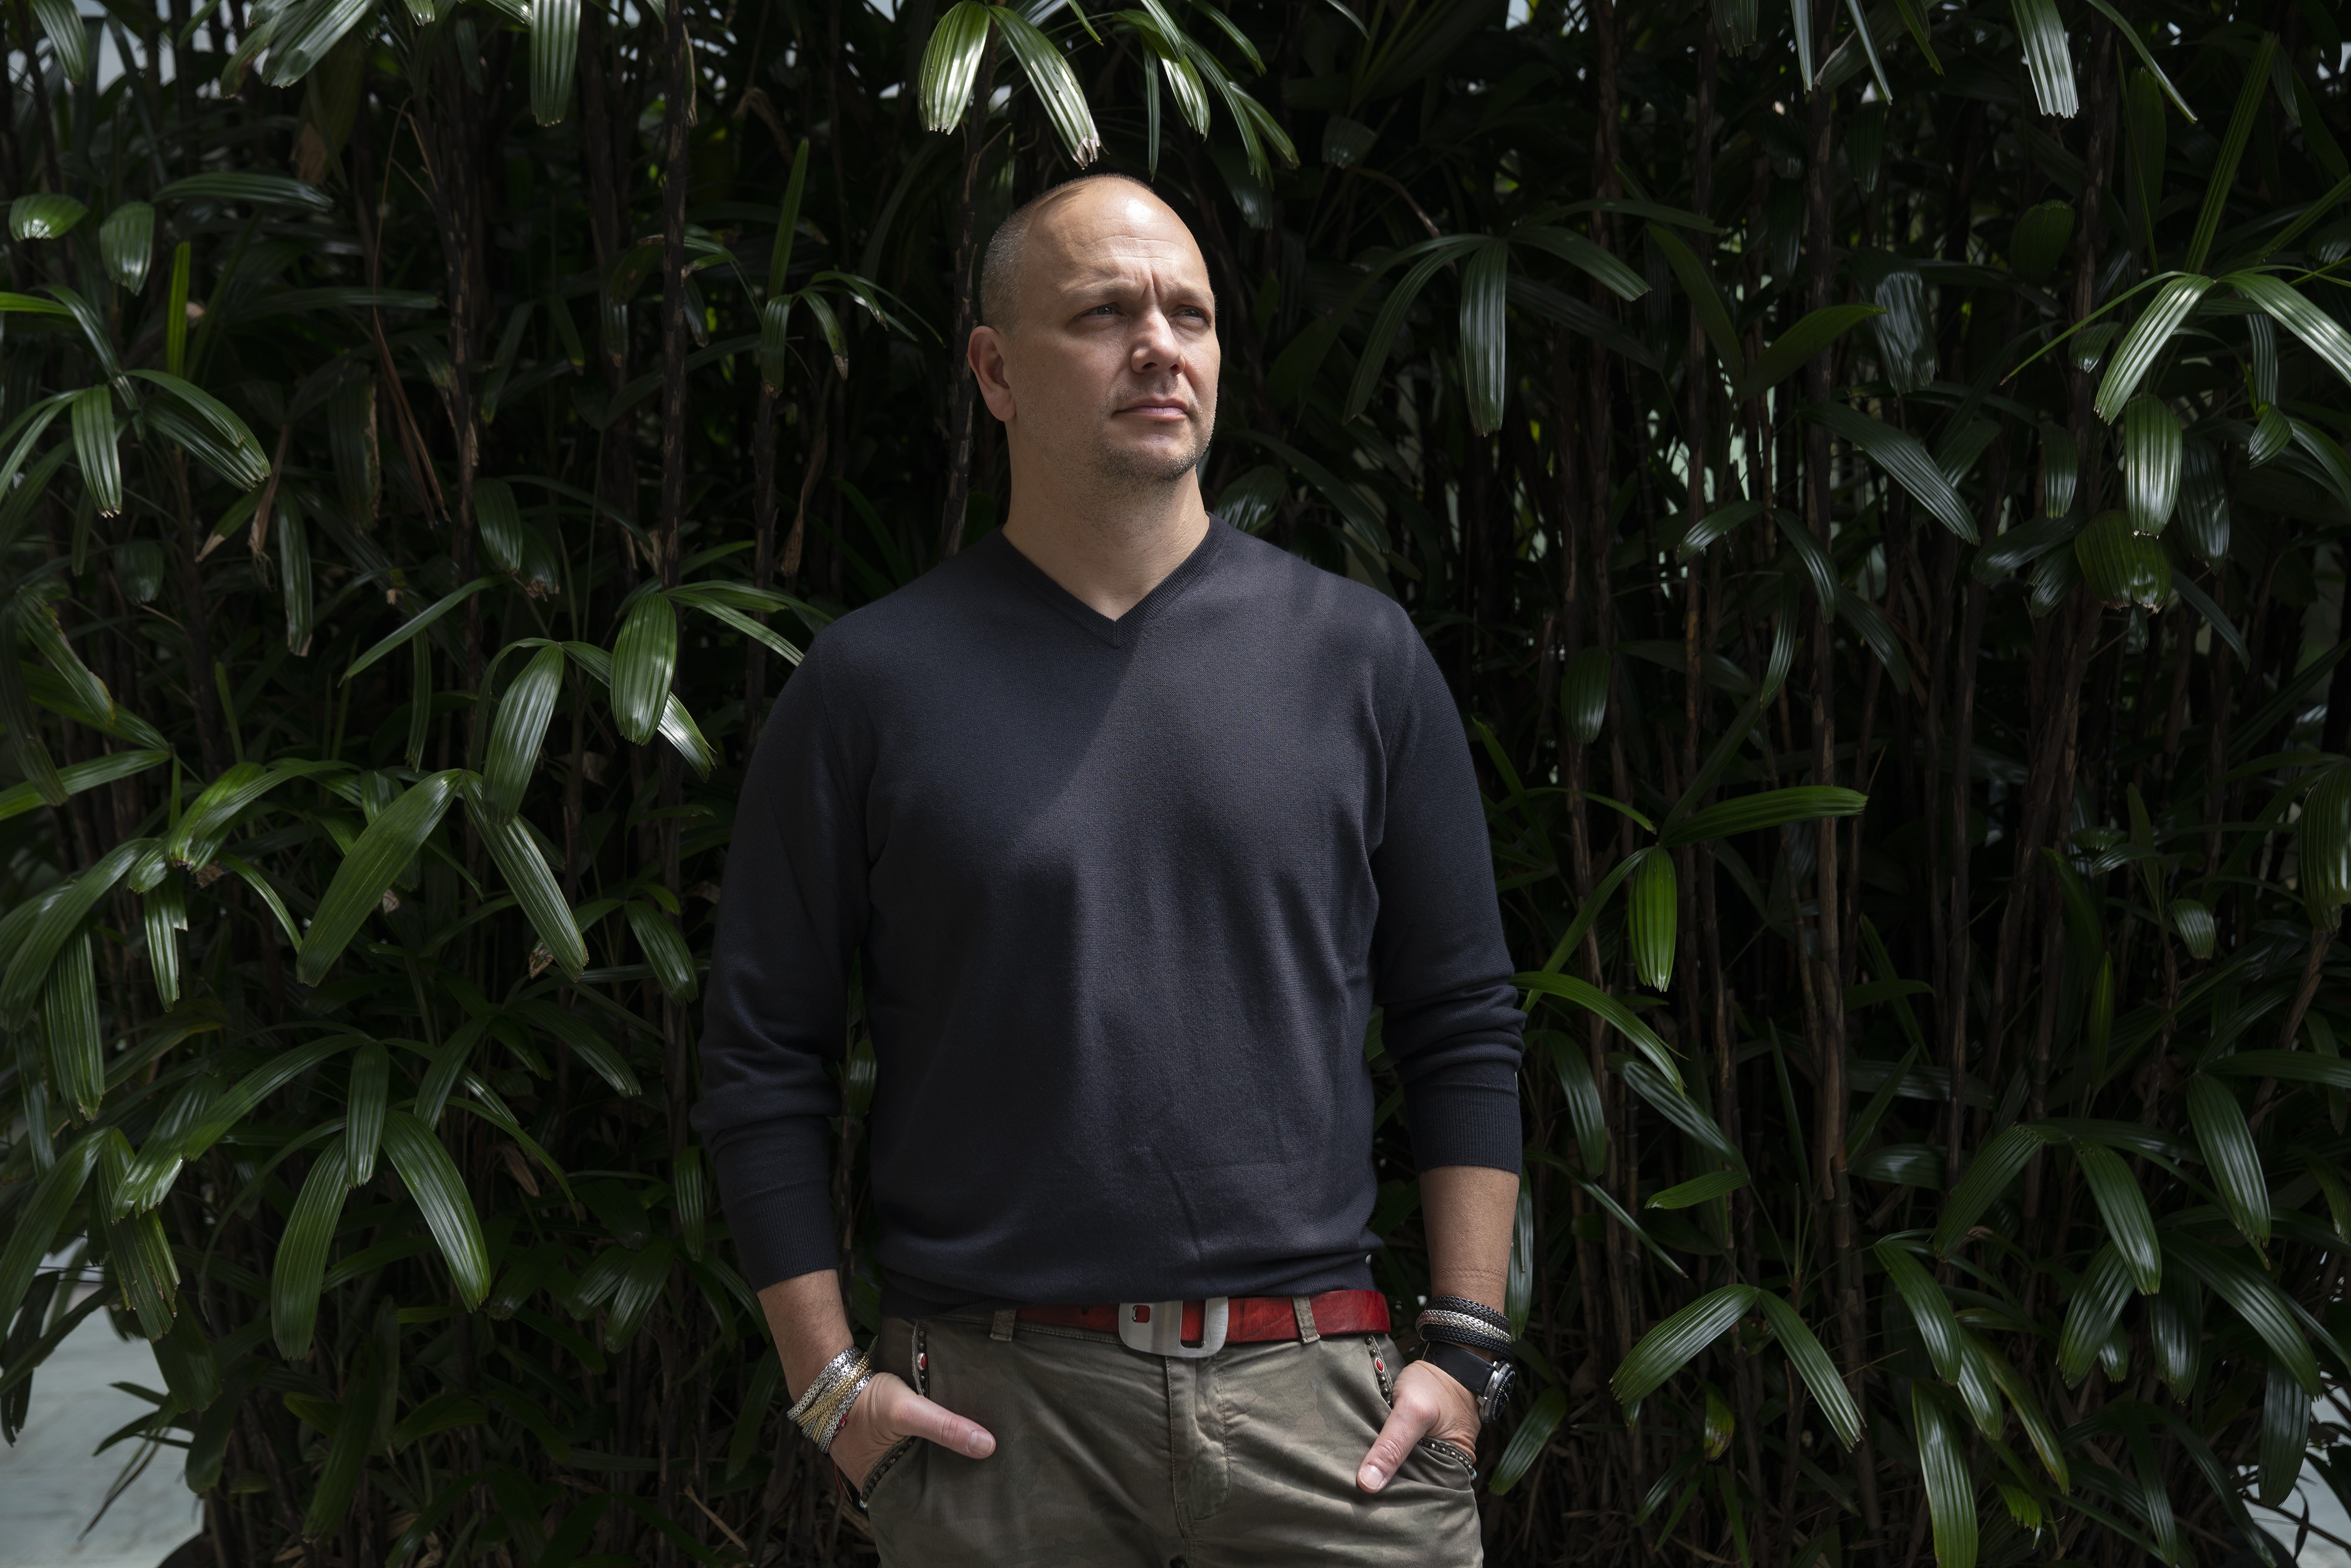 Sofa King Podcast Challenger Iphone Co Creator Tony Fadell On Plant Based Burgers Batteries